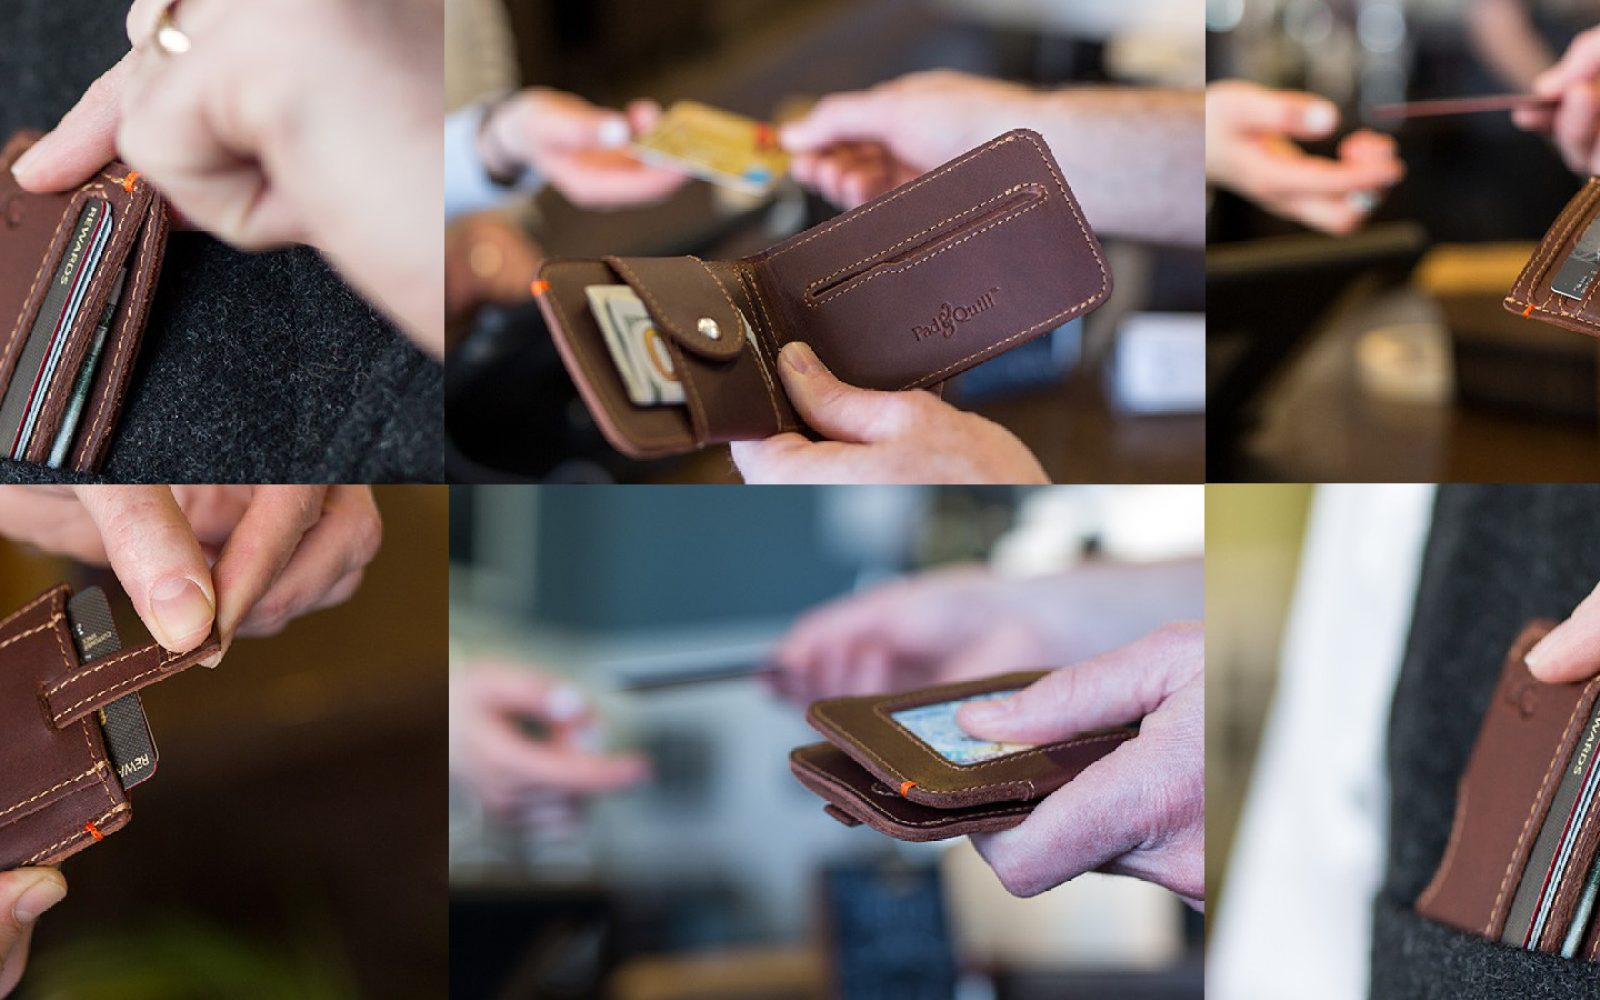 Pad & Quill's new line of full-grain leather men's wallets